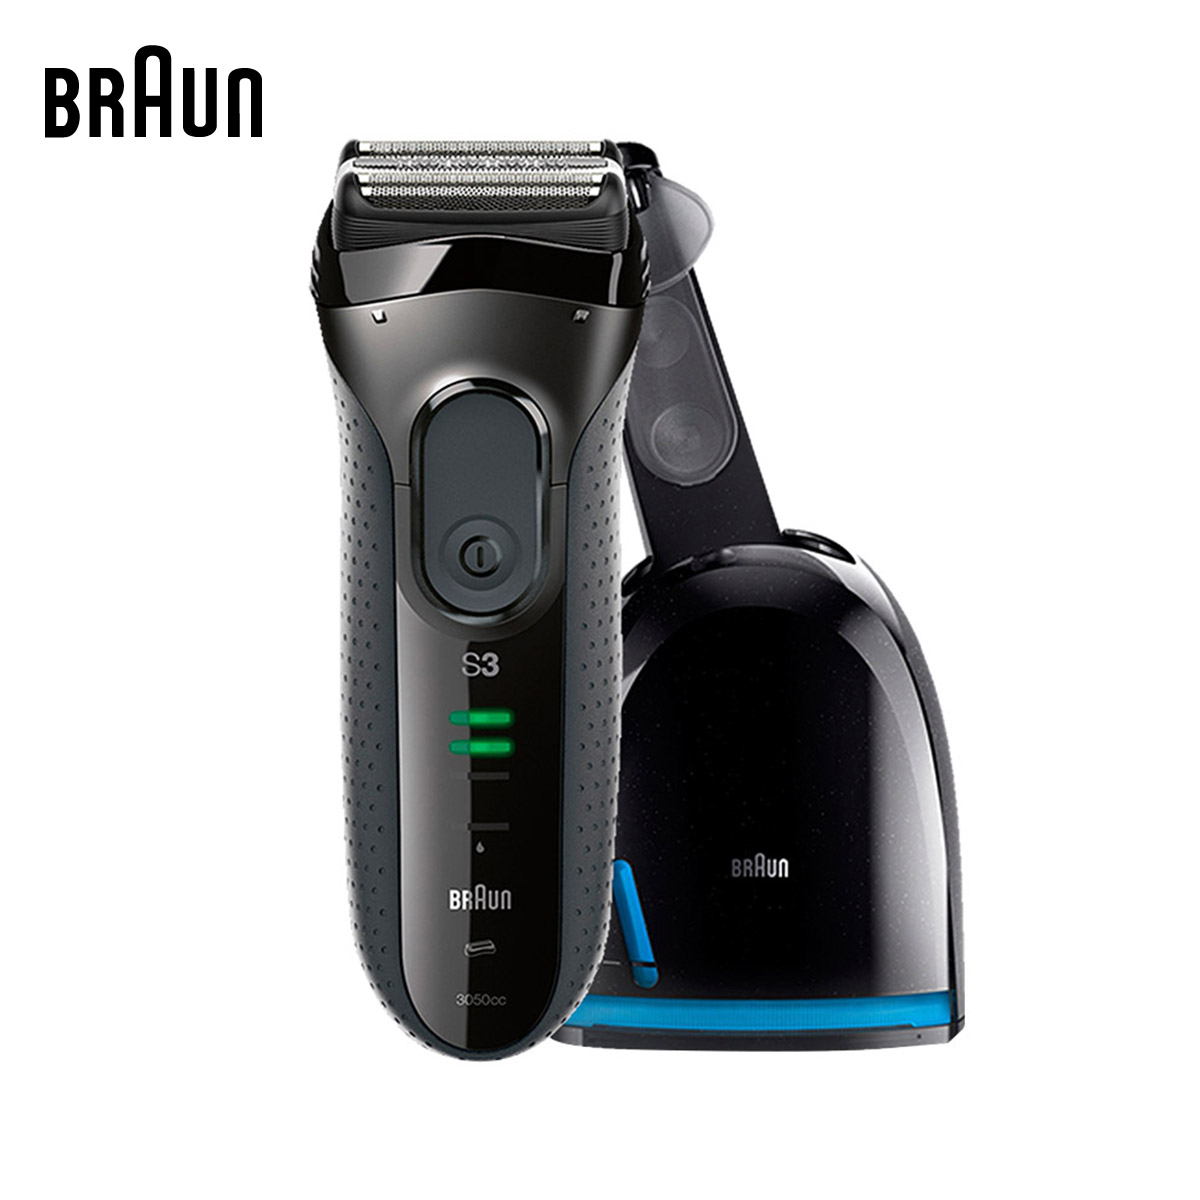 Braun Electric Shavers 3050cc Men Electric Razors Washable Reciprocating Blades Automatic Cleaning Center braun electric shavers 5030s rechargeable reciprocating blades high quality shaving safety razors for men